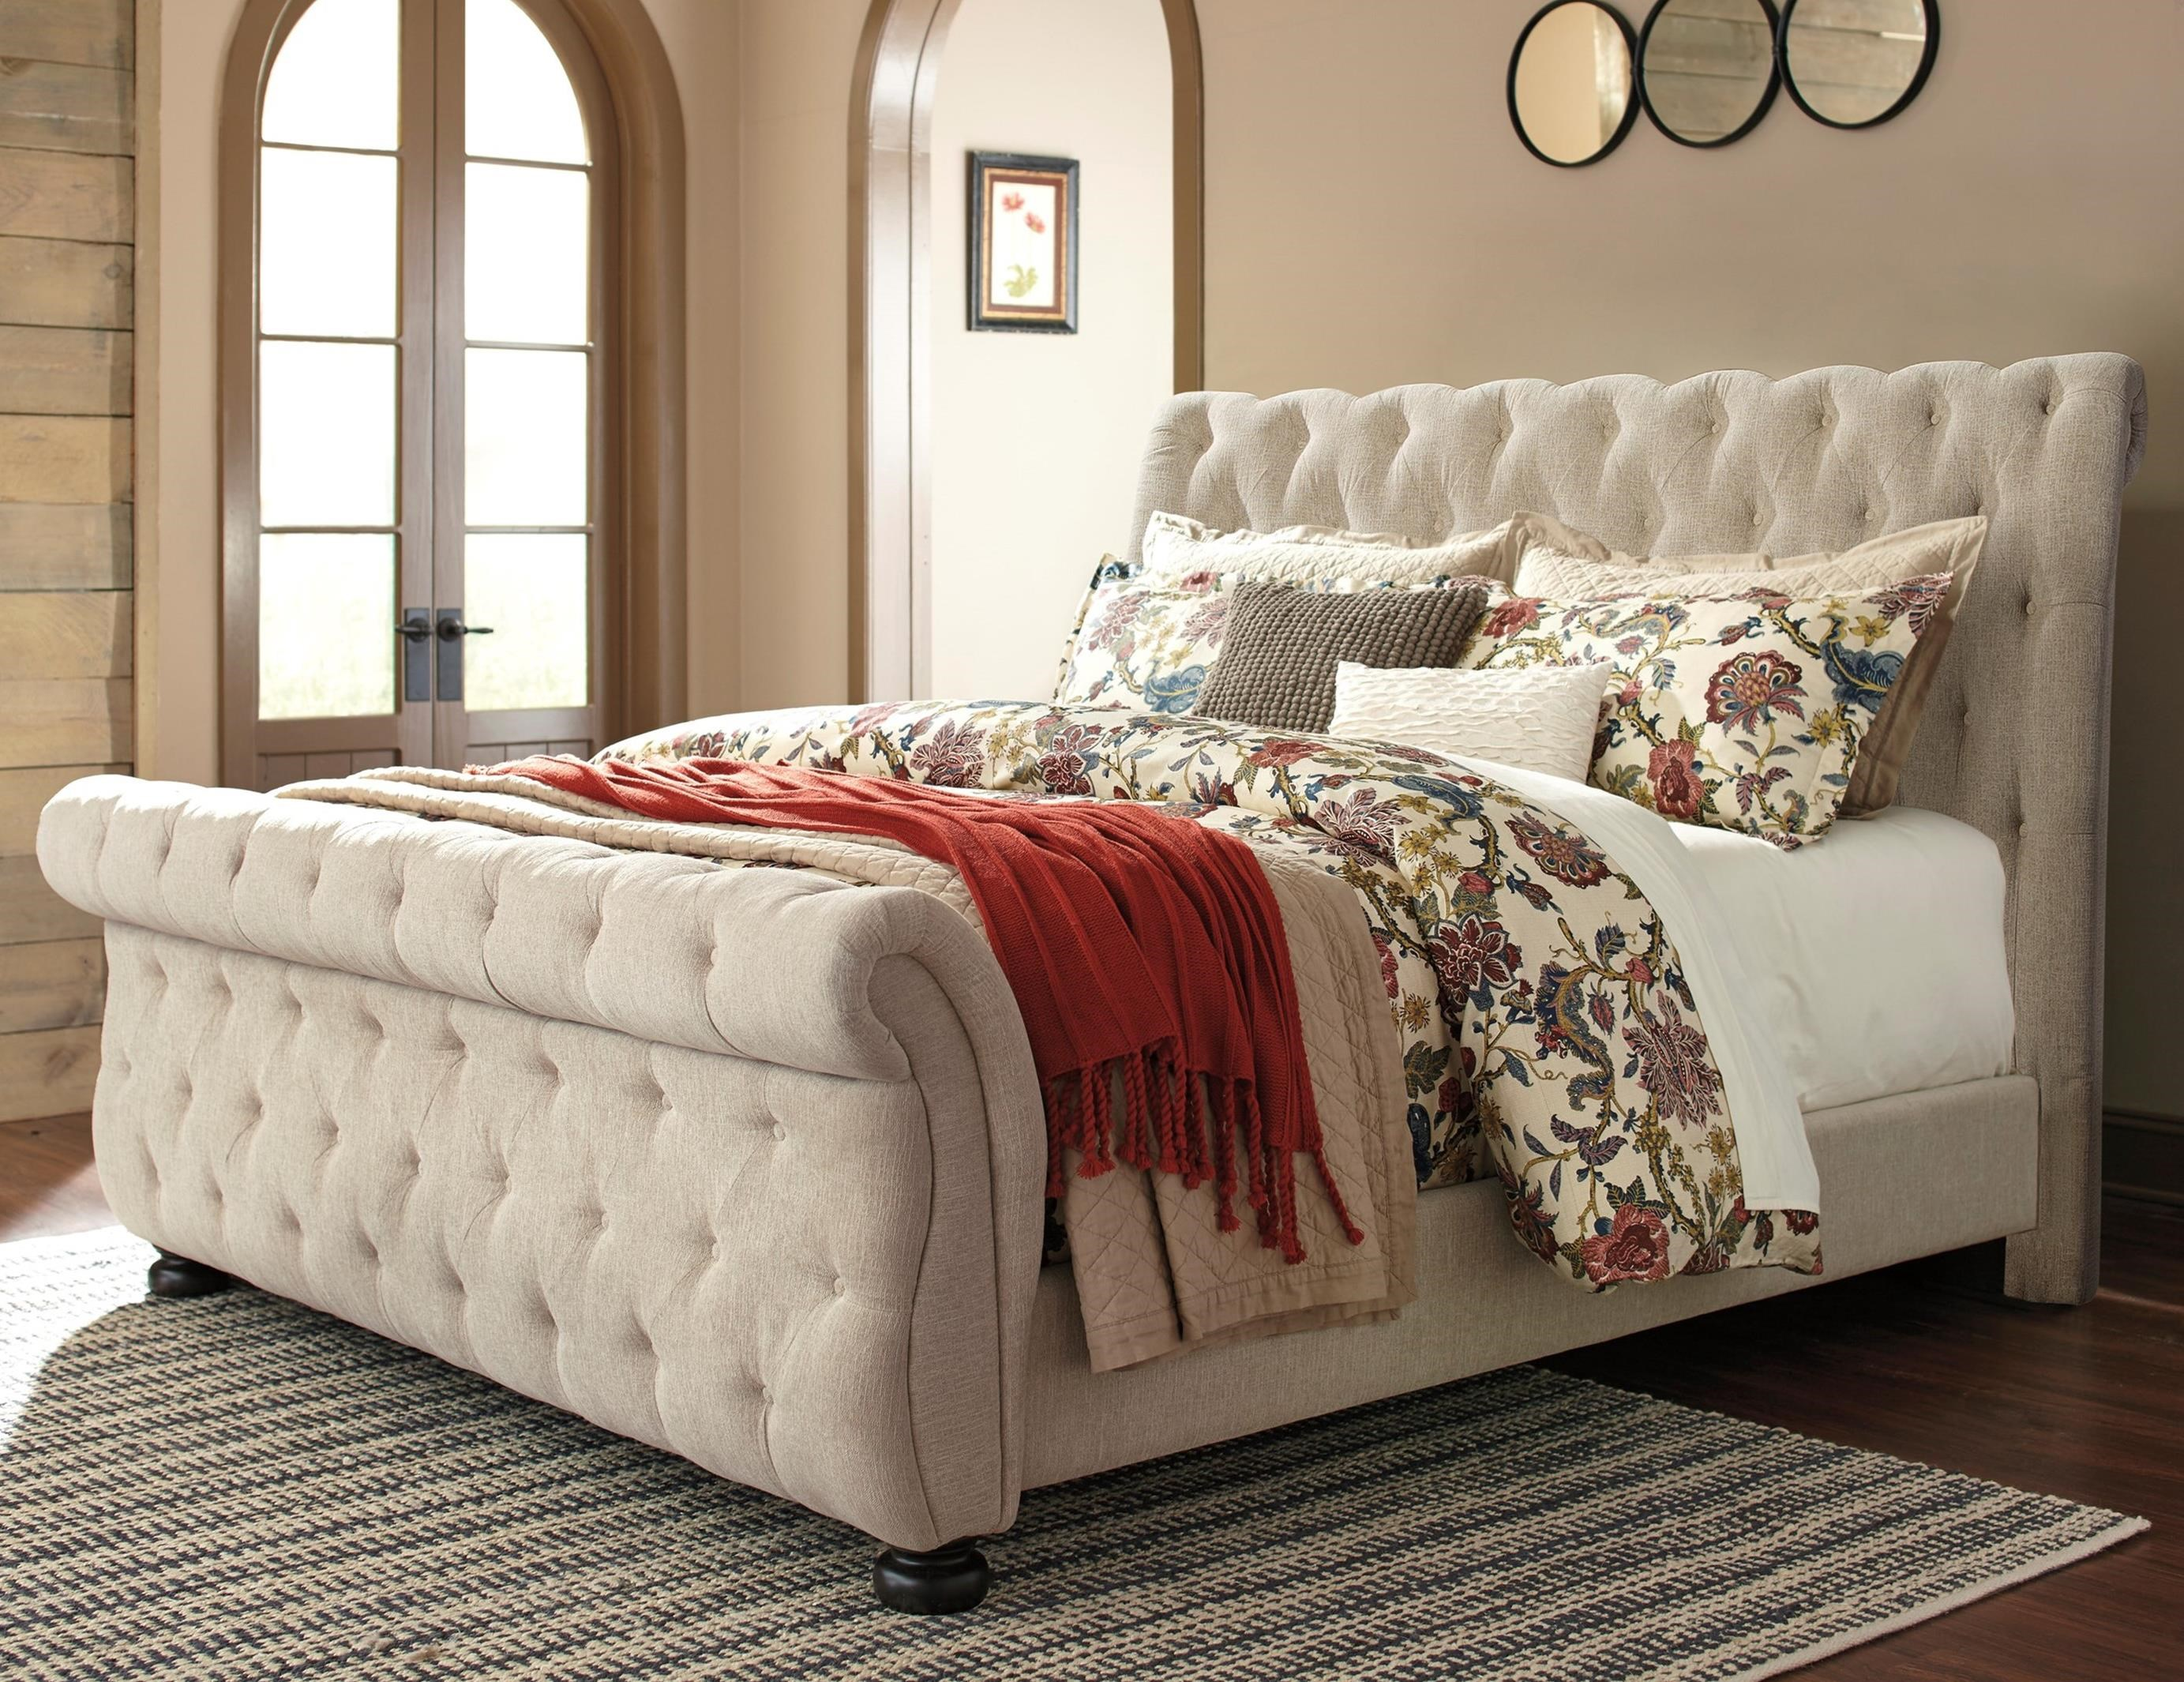 signature design by ashley willenburg queen upholstered sleigh bed with tufting john v schultz. Black Bedroom Furniture Sets. Home Design Ideas